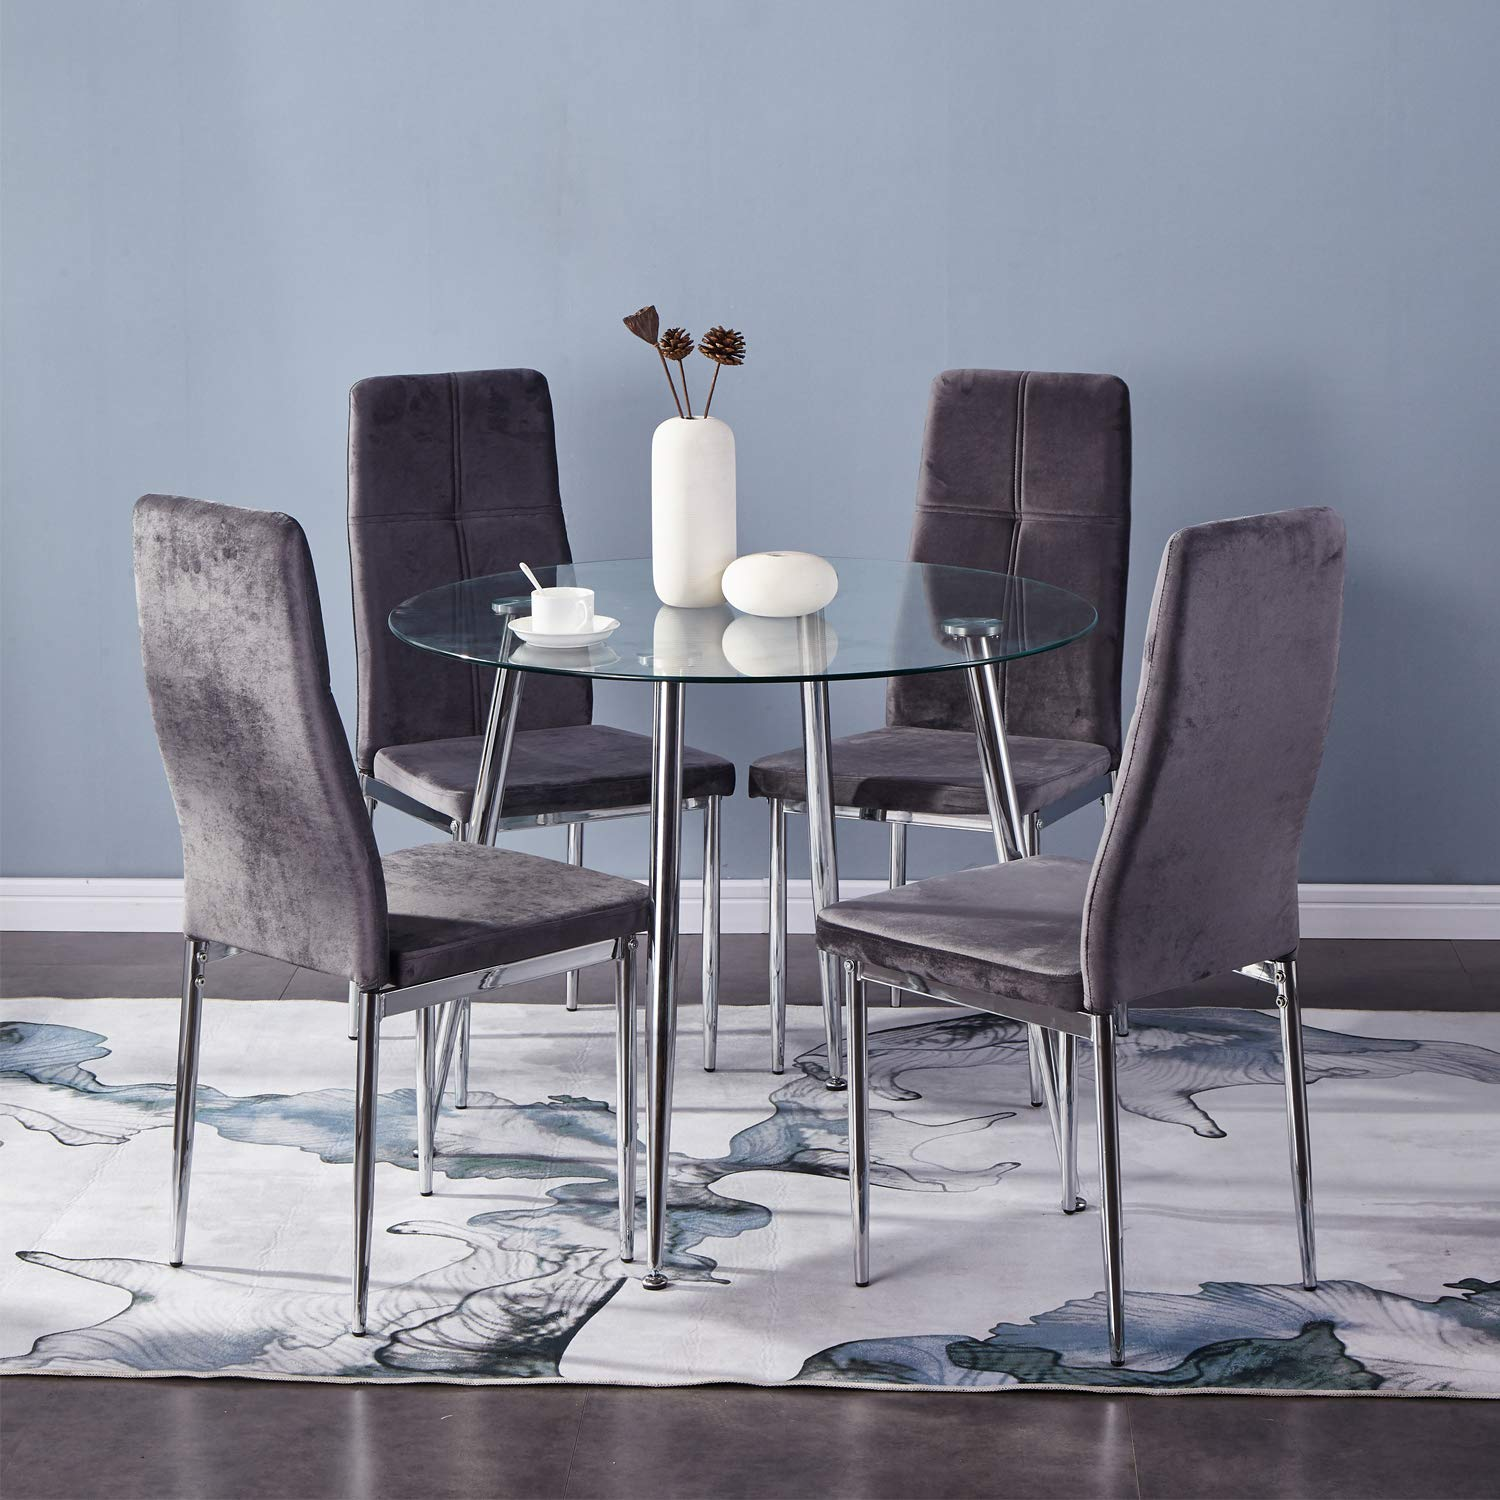 Goldfan Small Round Dining Table And Chairs Set Of 4 Modern Glass Kitchen Dining Table Set With Chrome Legs For Living Room Office Furniture Buy Online In Canada At Canada Desertcart Com Productid